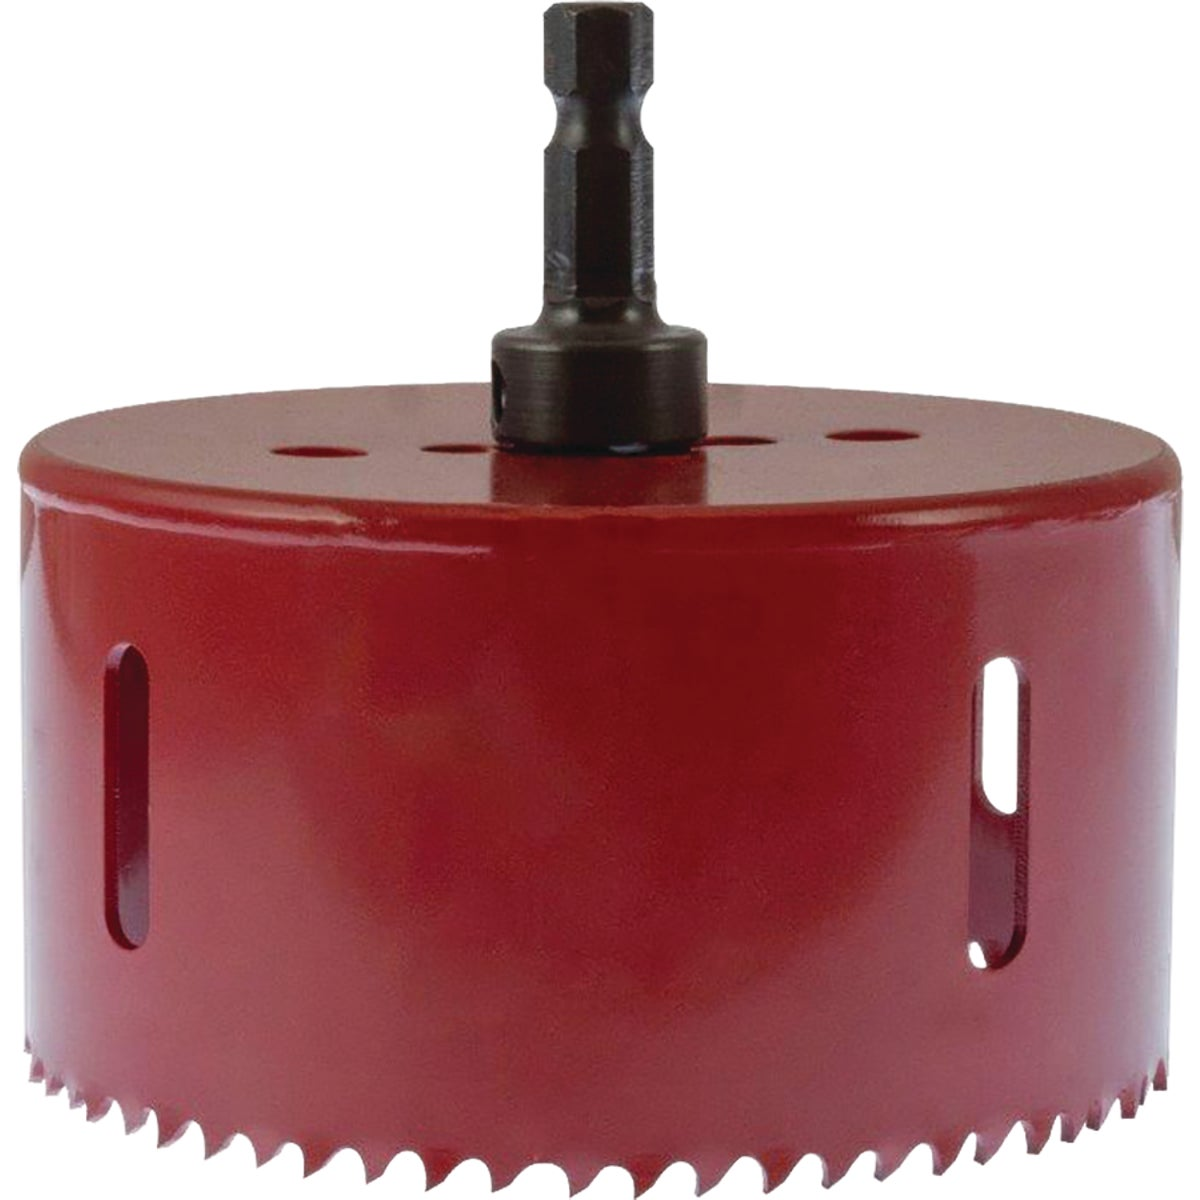 "4"" HOLE SAW - 336844 by M K Morse Co"